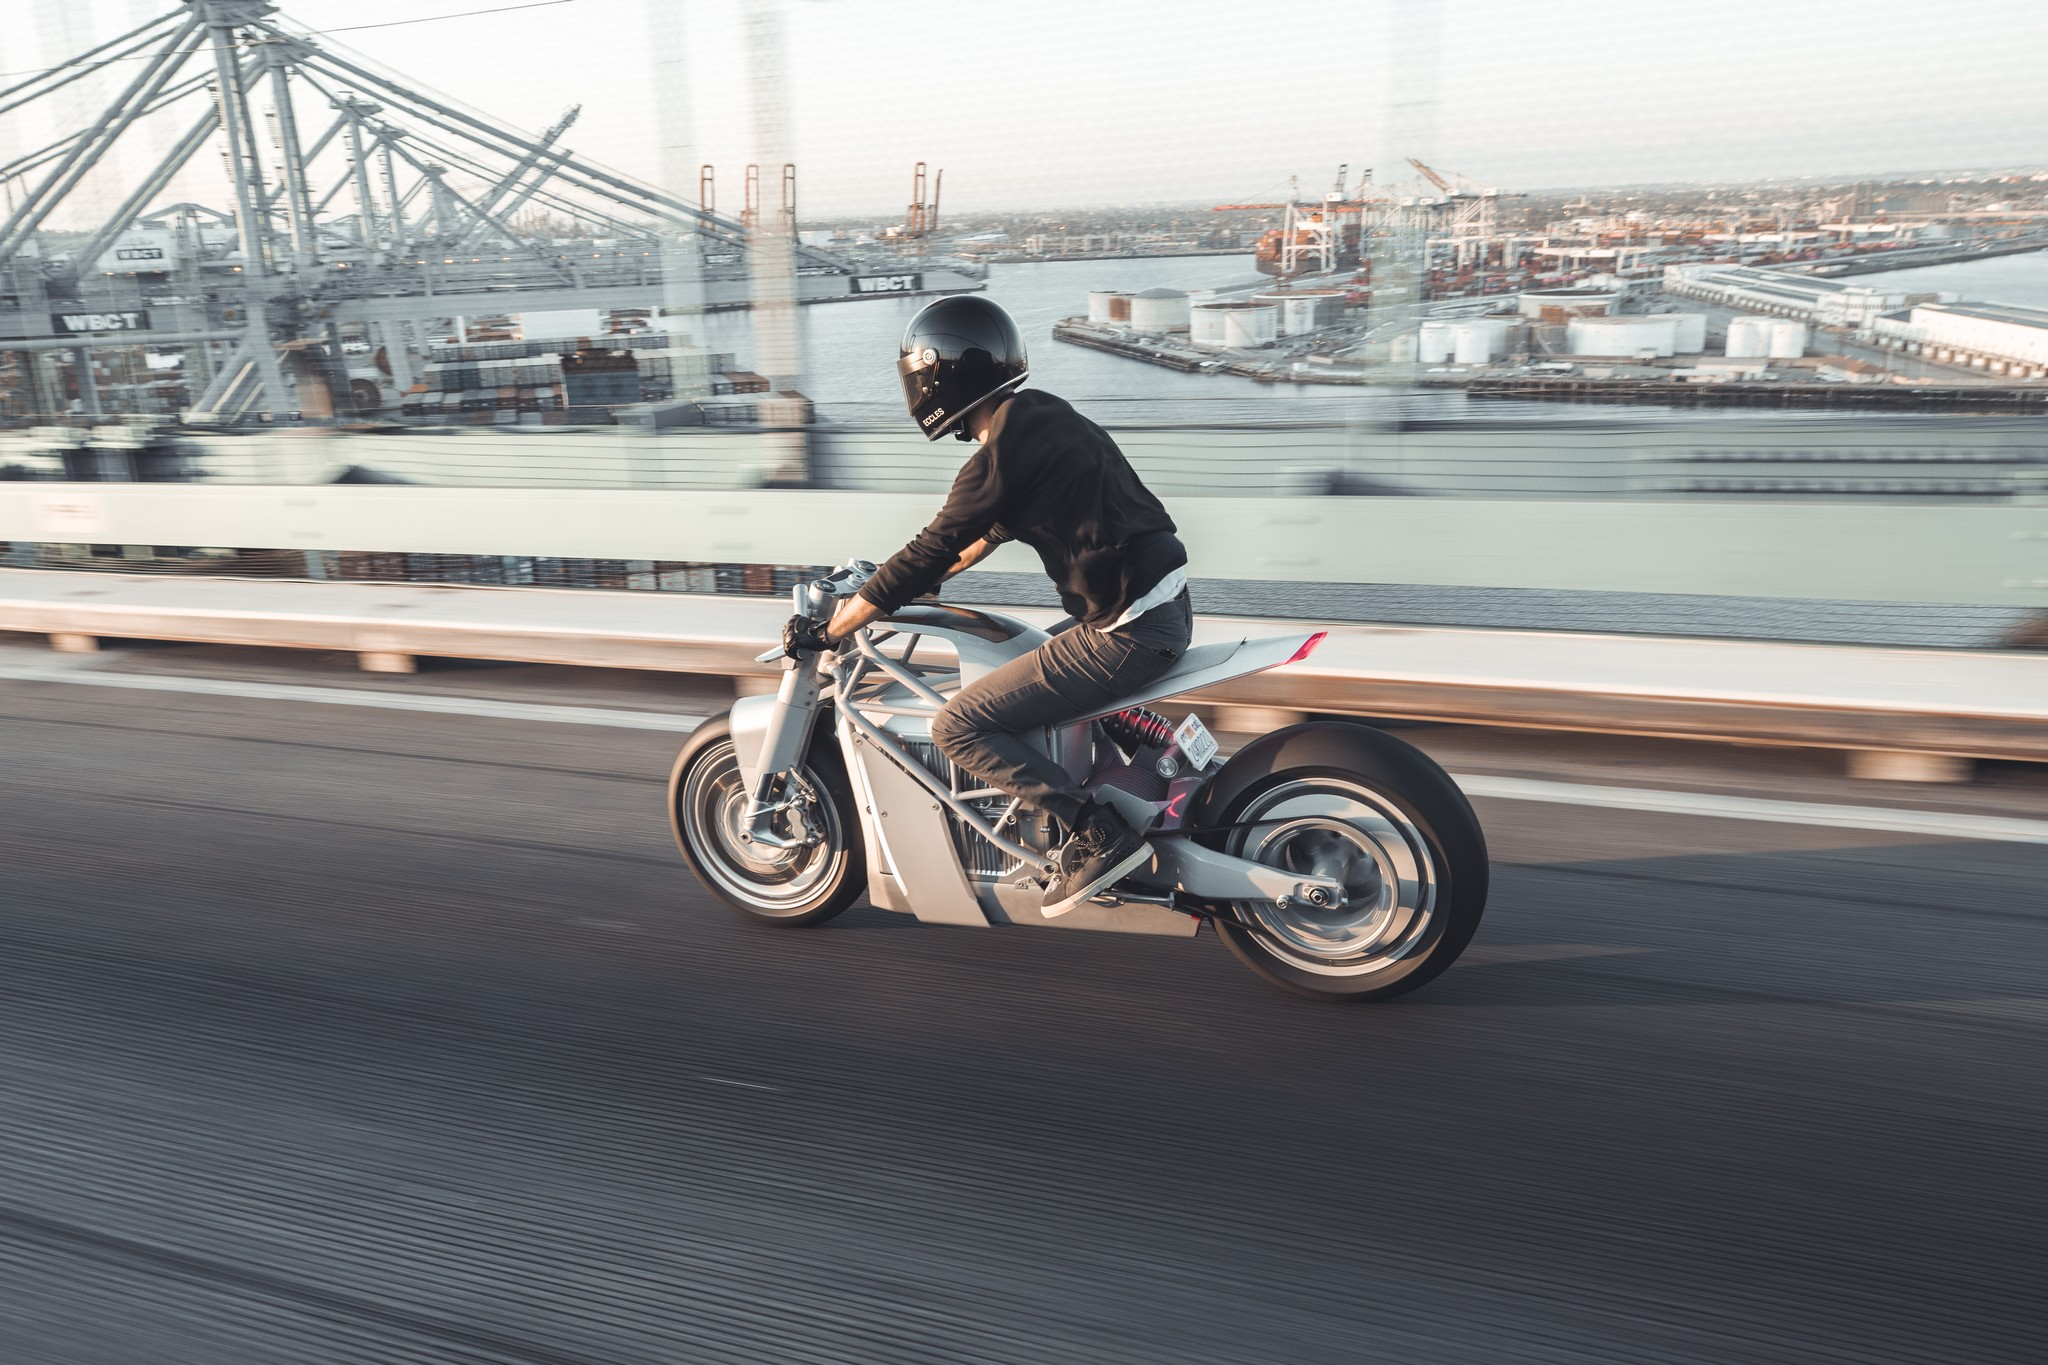 Hugo Eccles from San Francisco's Untitled Motorcycles on his XP Zero electric motorcycle